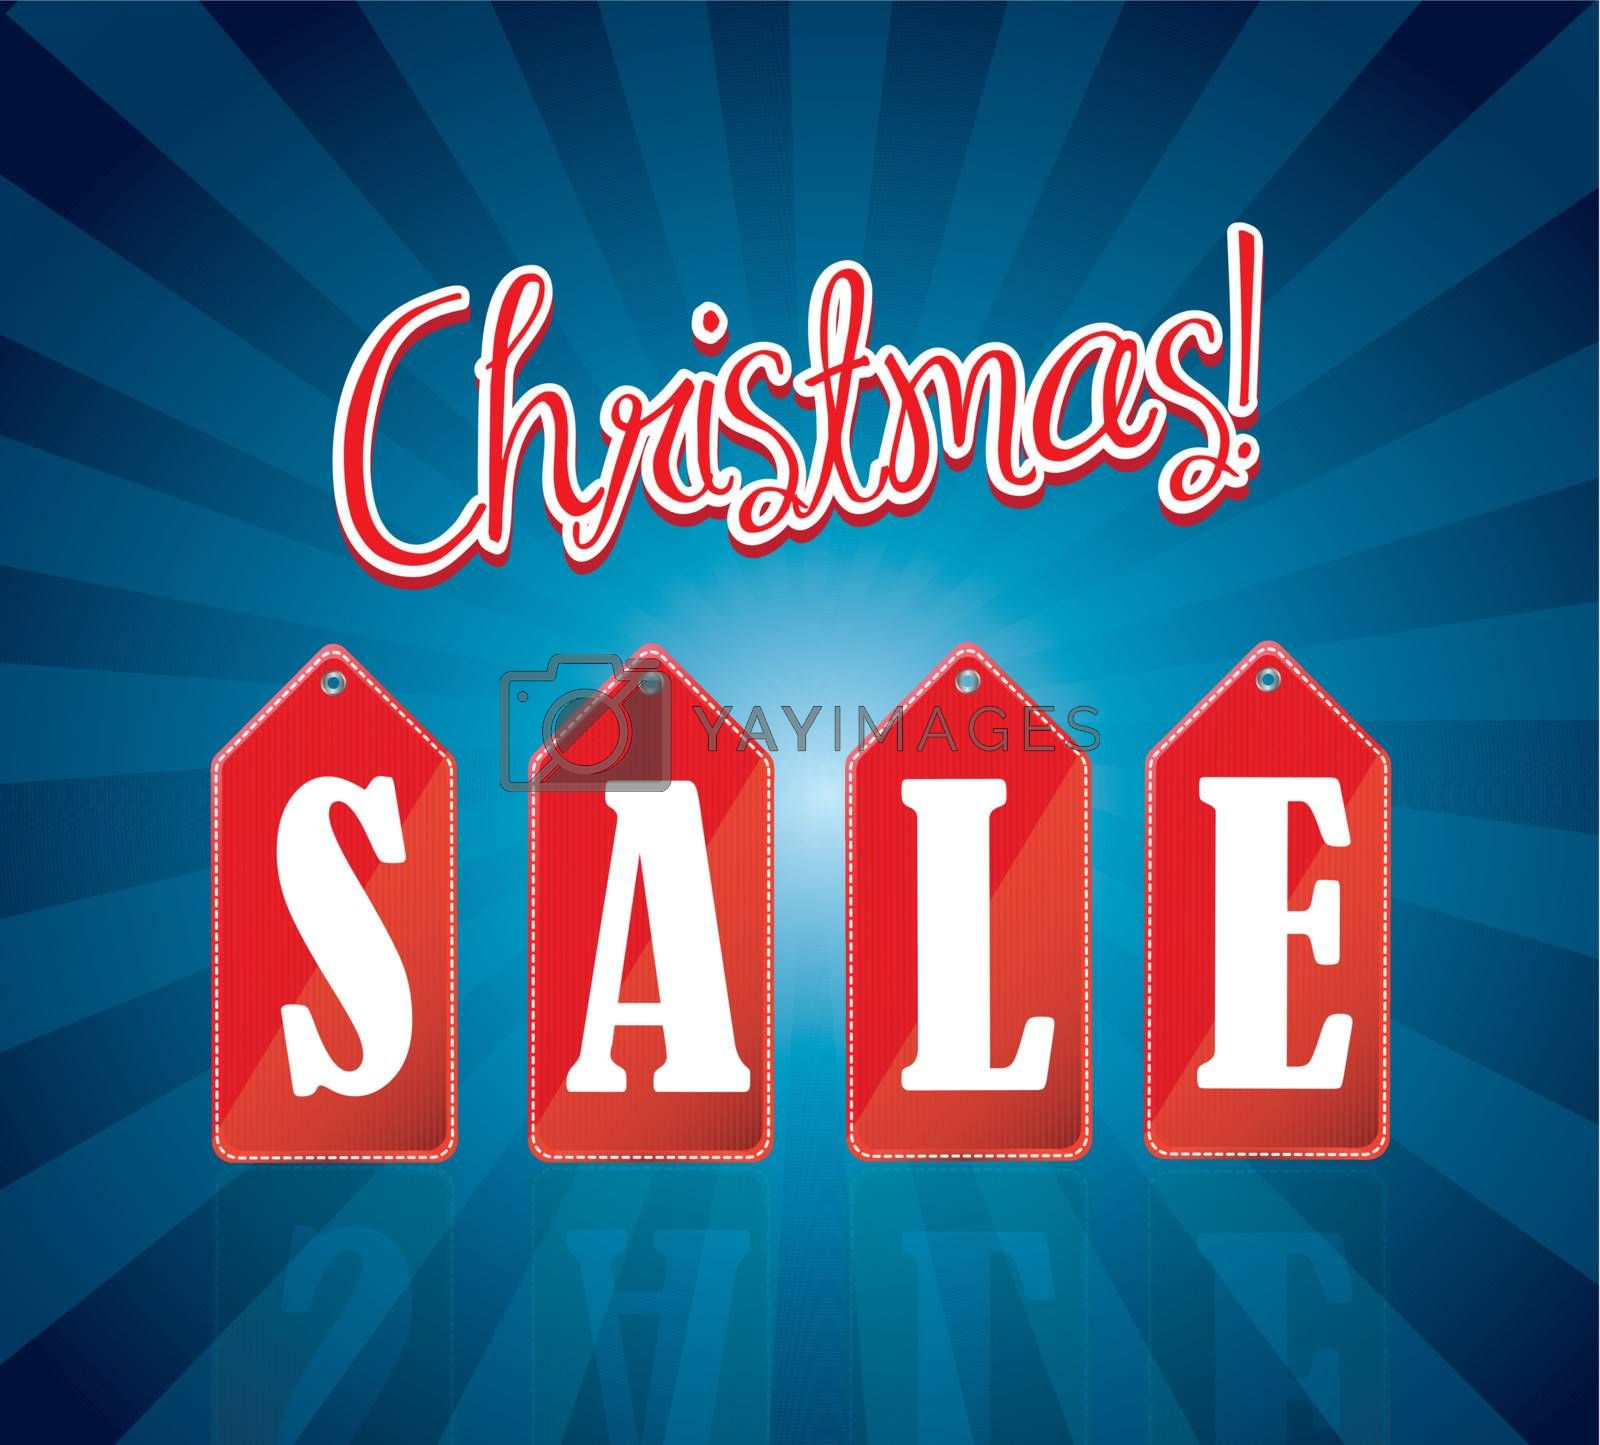 great Christmas sale over blue background